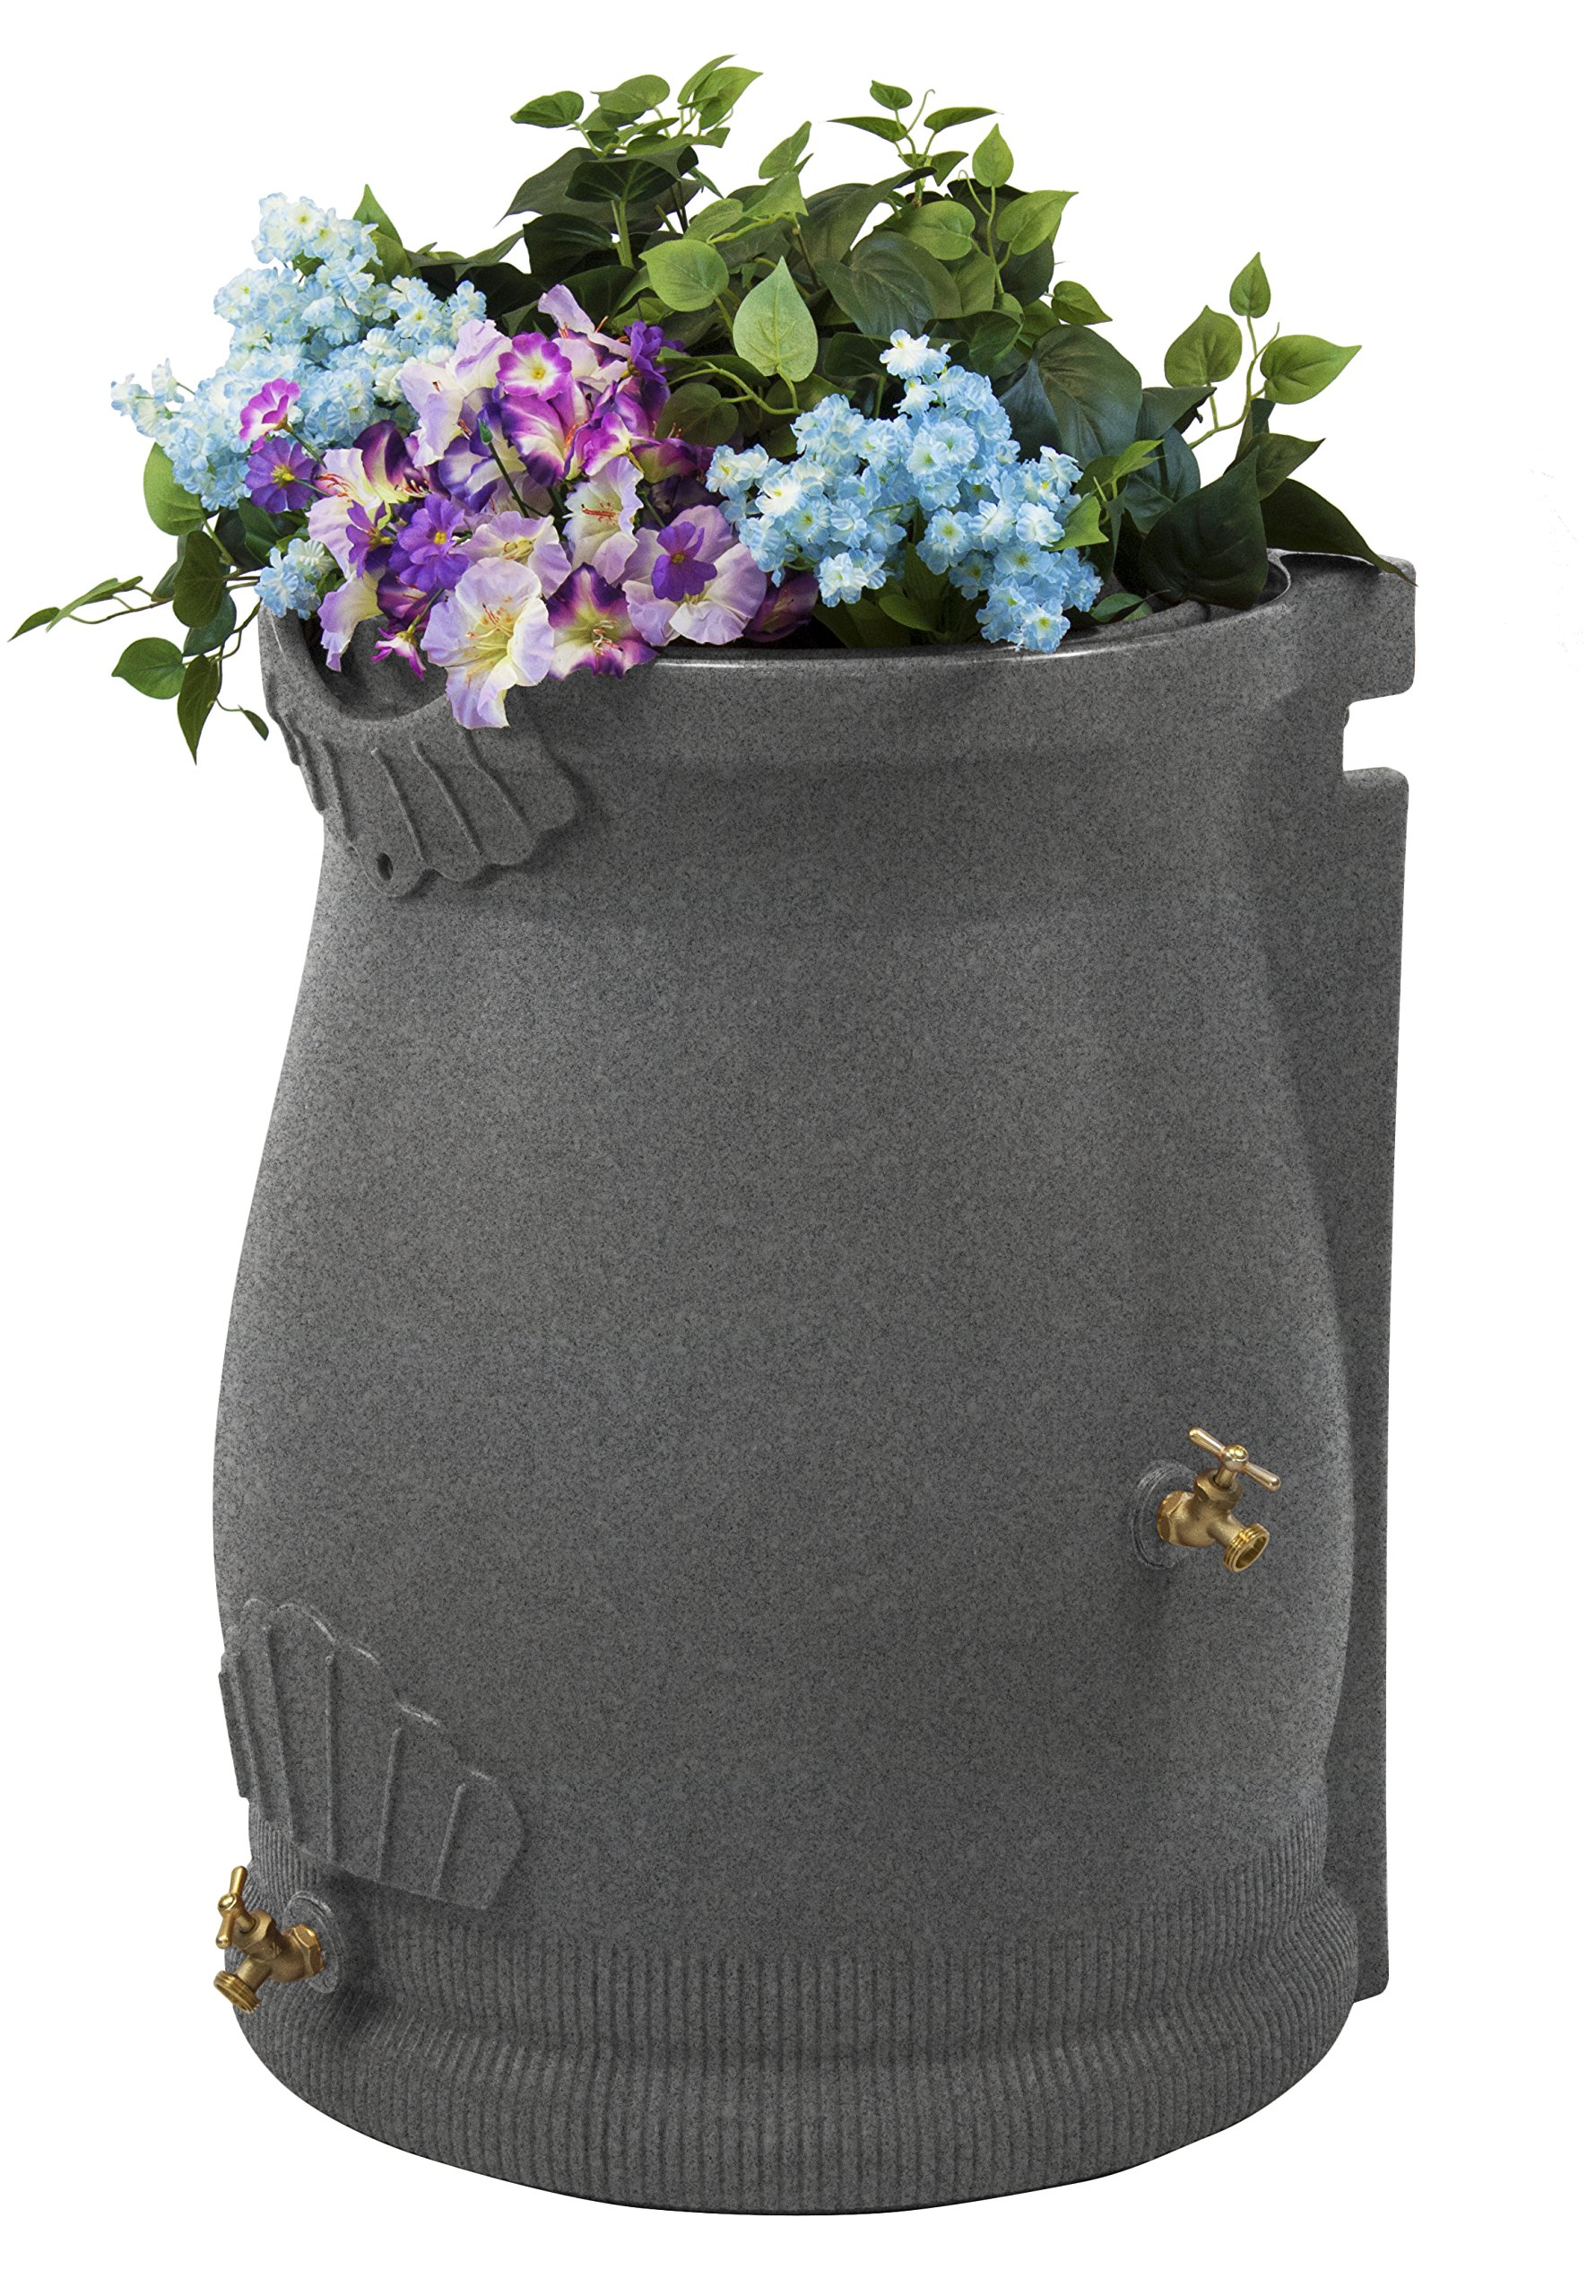 Good Ideas RWURN50-LIG Rain Wizard Rain Barrel Urn, 50 gallon, Light Granite by Good Ideas